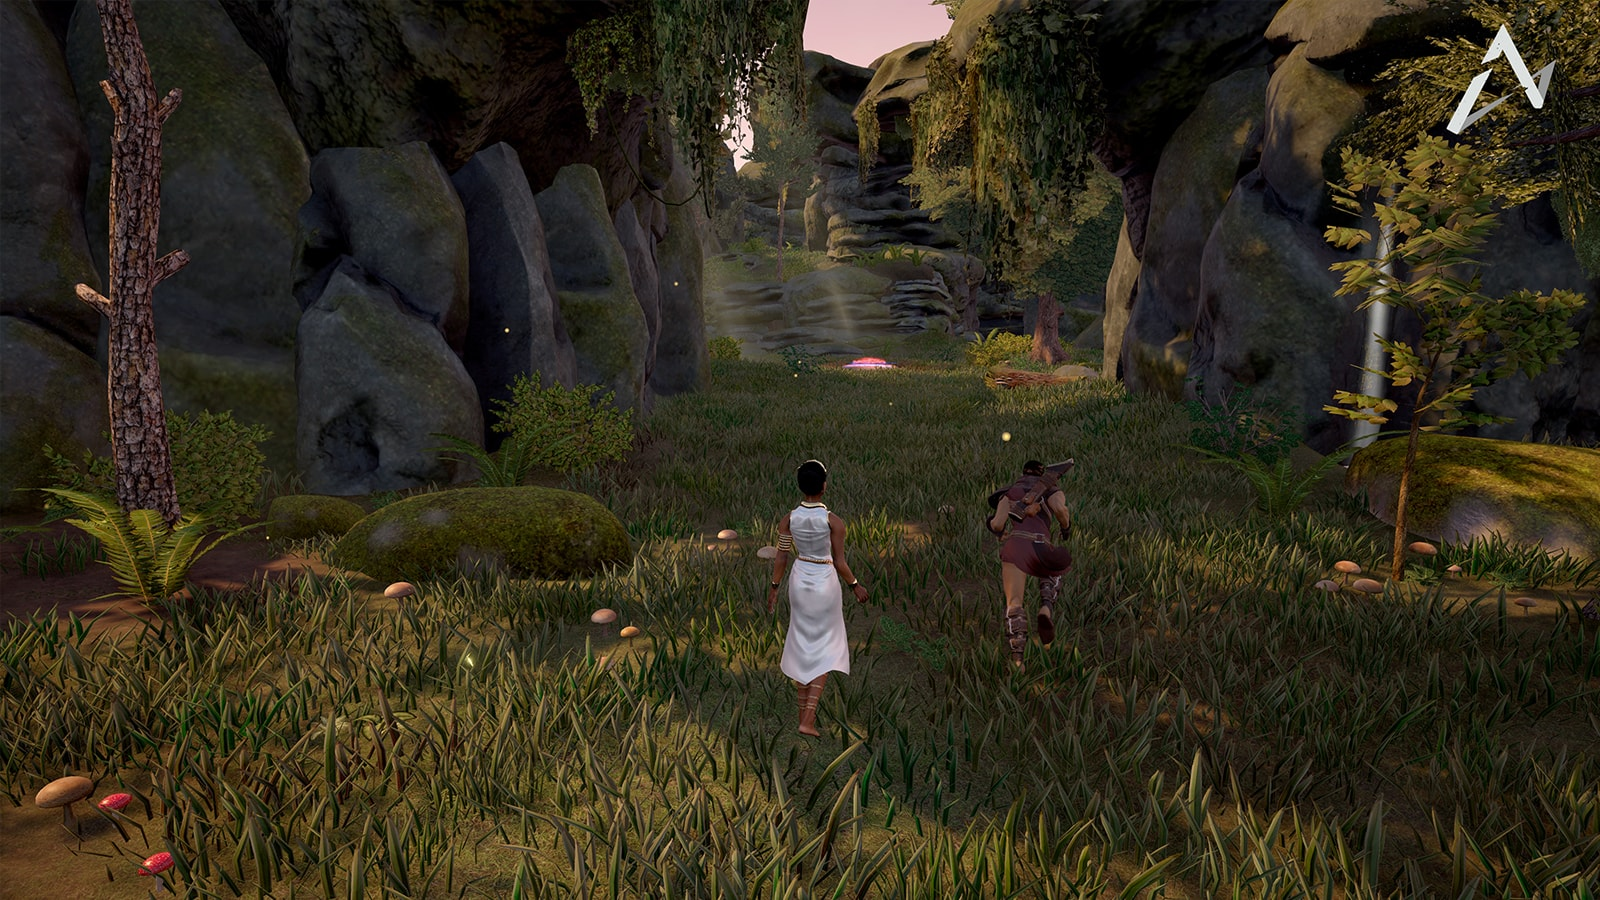 A woman in a white dress follows behind Orion as he begins to run down a sylvan pathway.